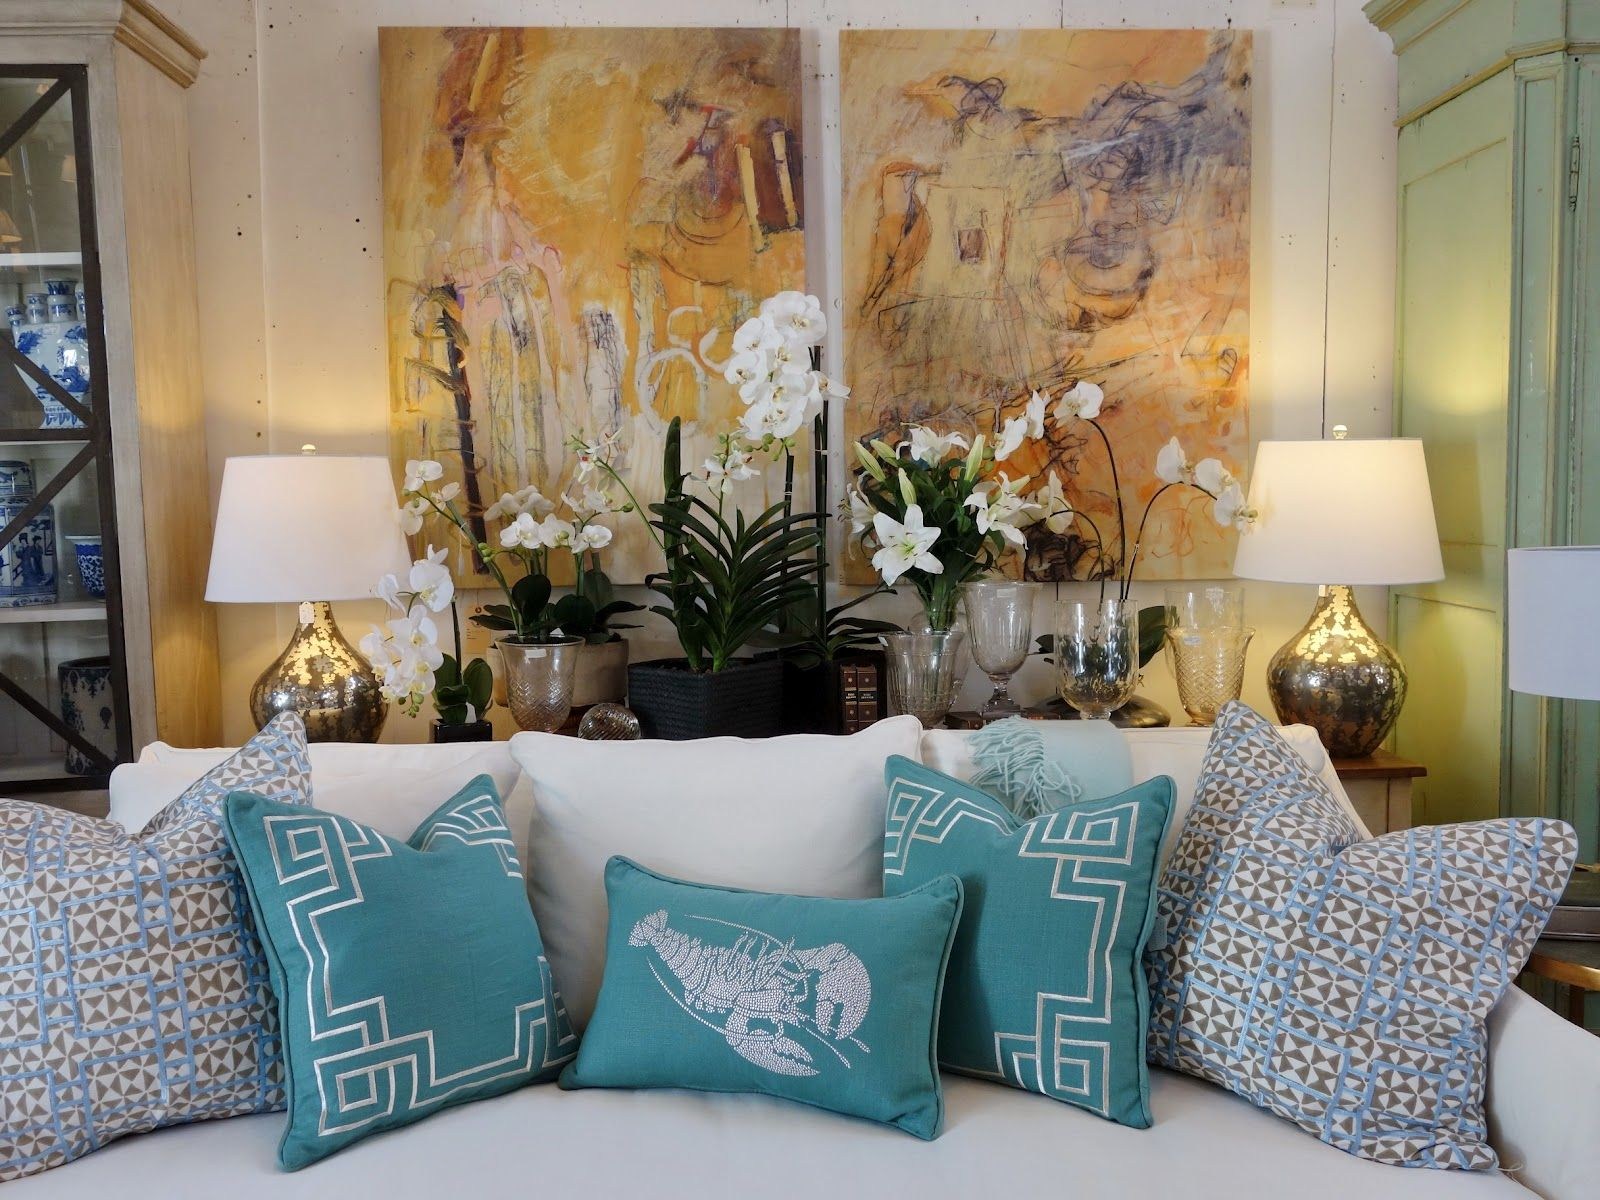 Window decor and more orange beach  pillows make a great room  decorating and architecture  pinterest